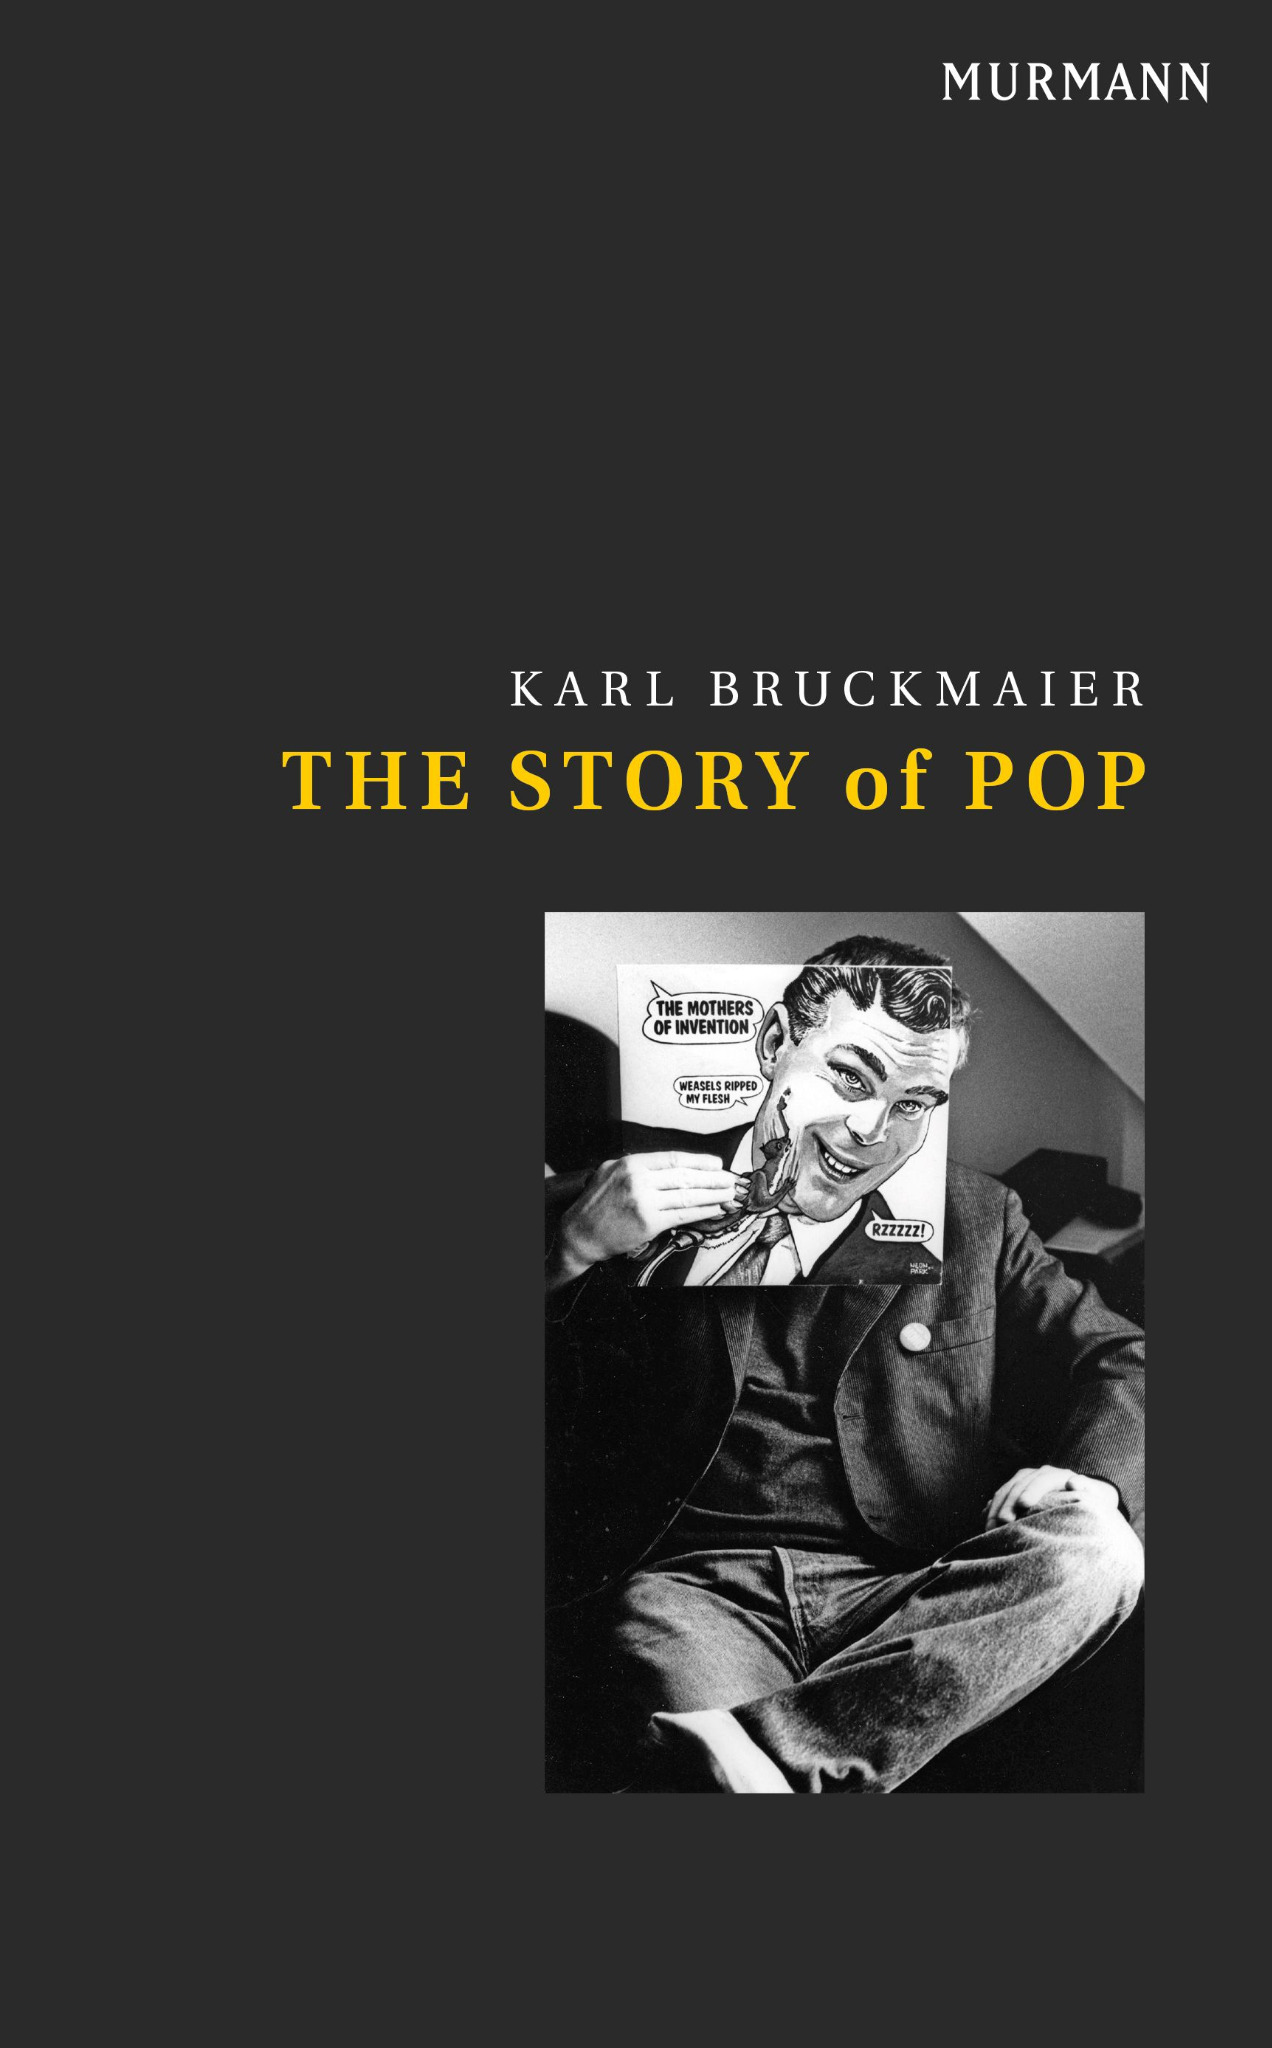 The Story of Pop / Karl Bruckmaier